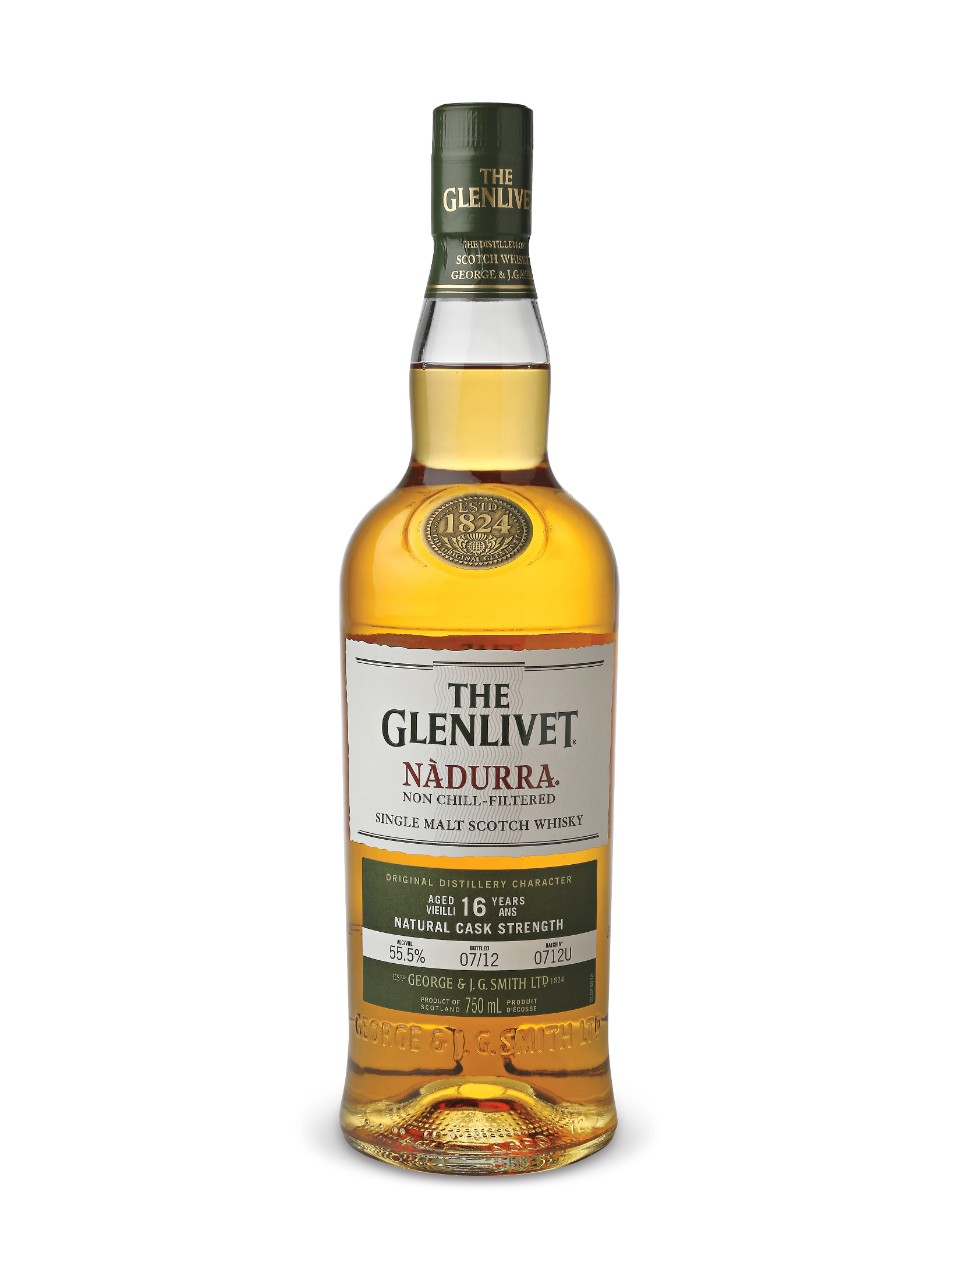 The Glenlivet Nadurra Aged 16 Years Scotch Whisky